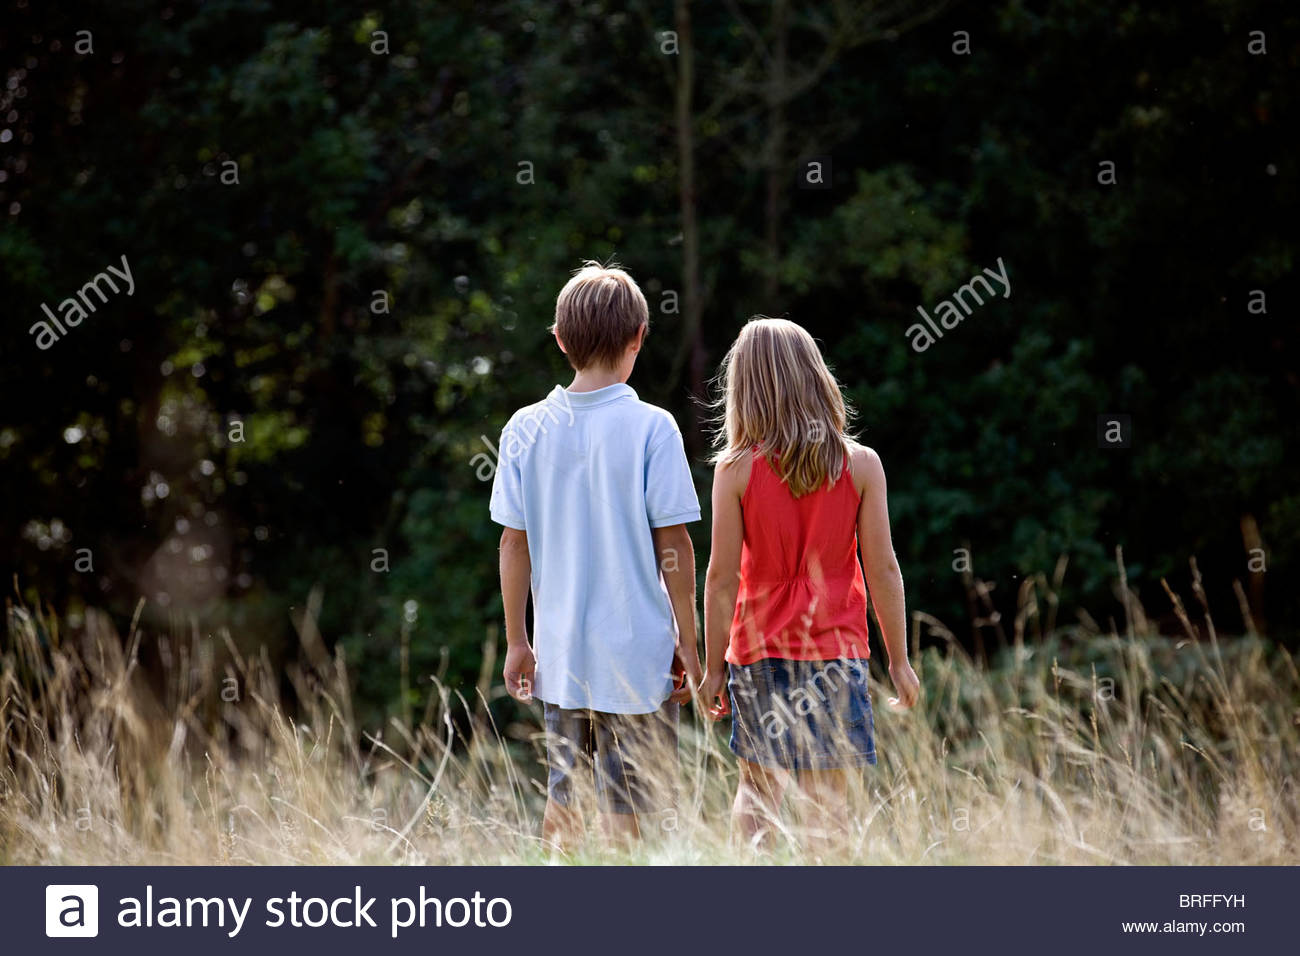 A Young Boy And Girl Walking Through A Field Rear View